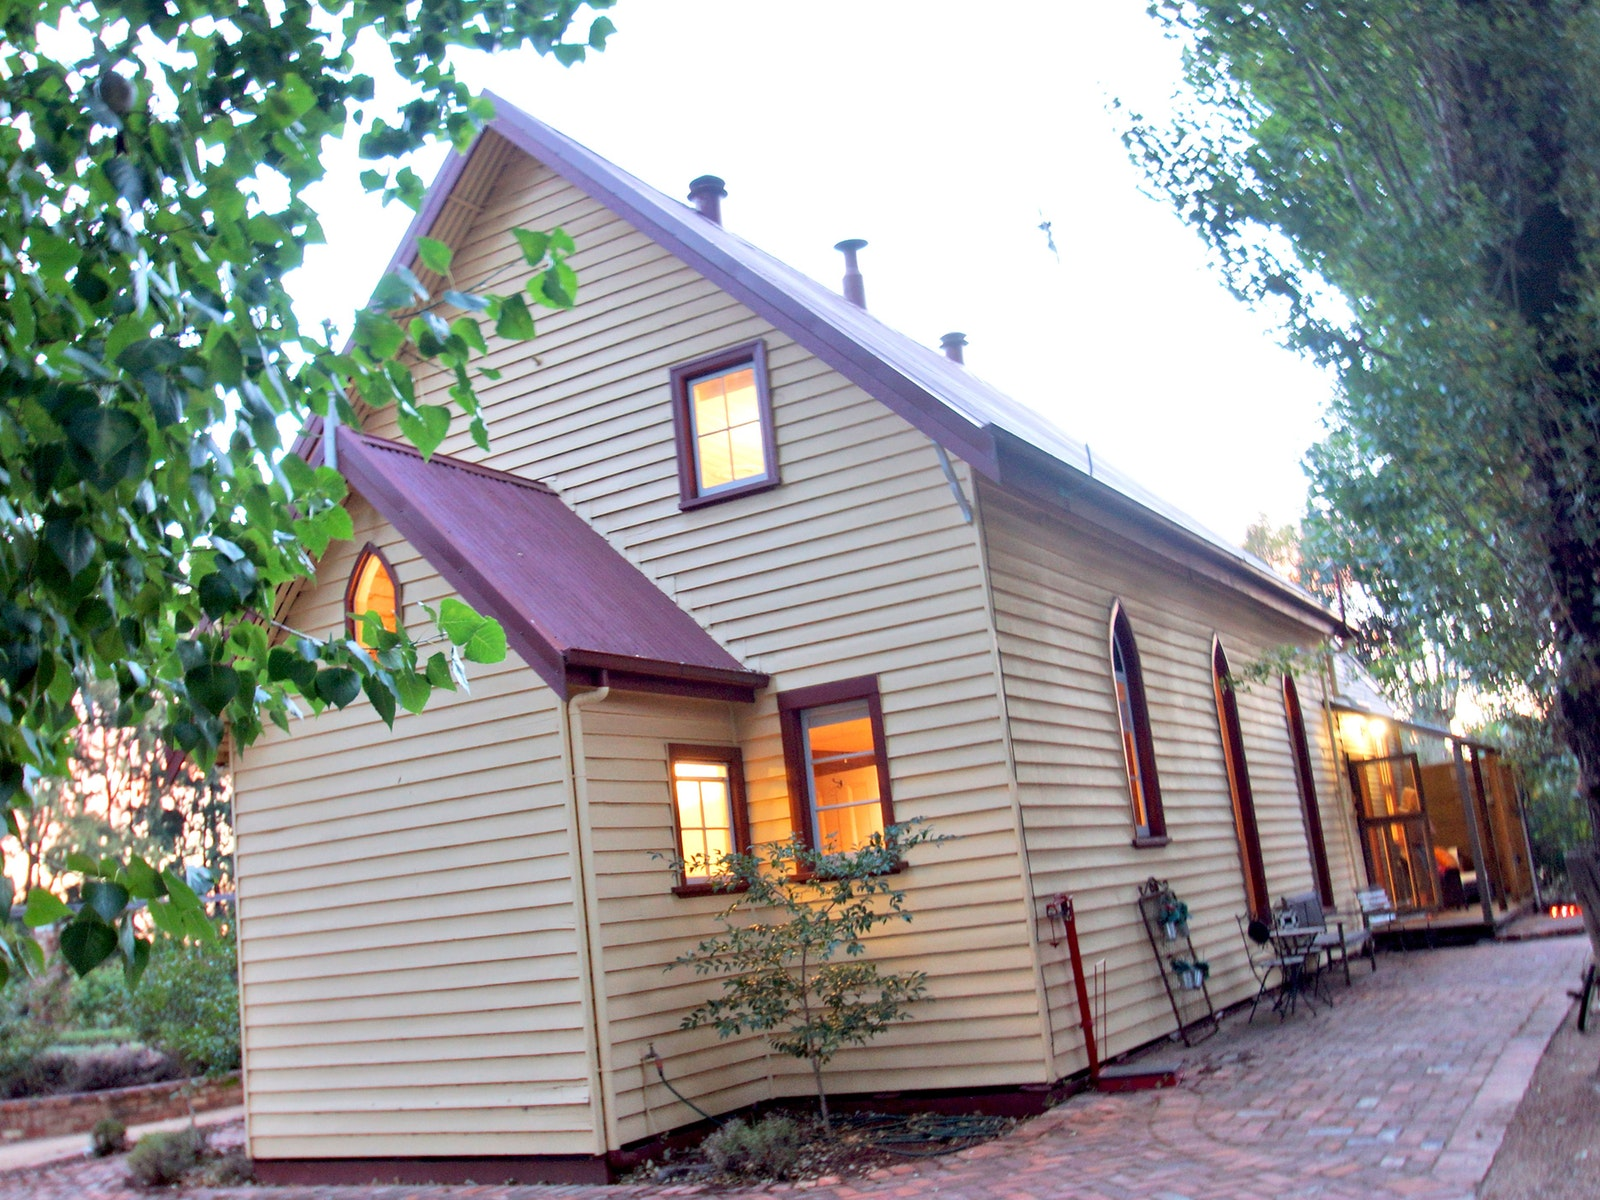 The Churches is on a gorgeous rural property five minutes from the heart of Shepparton